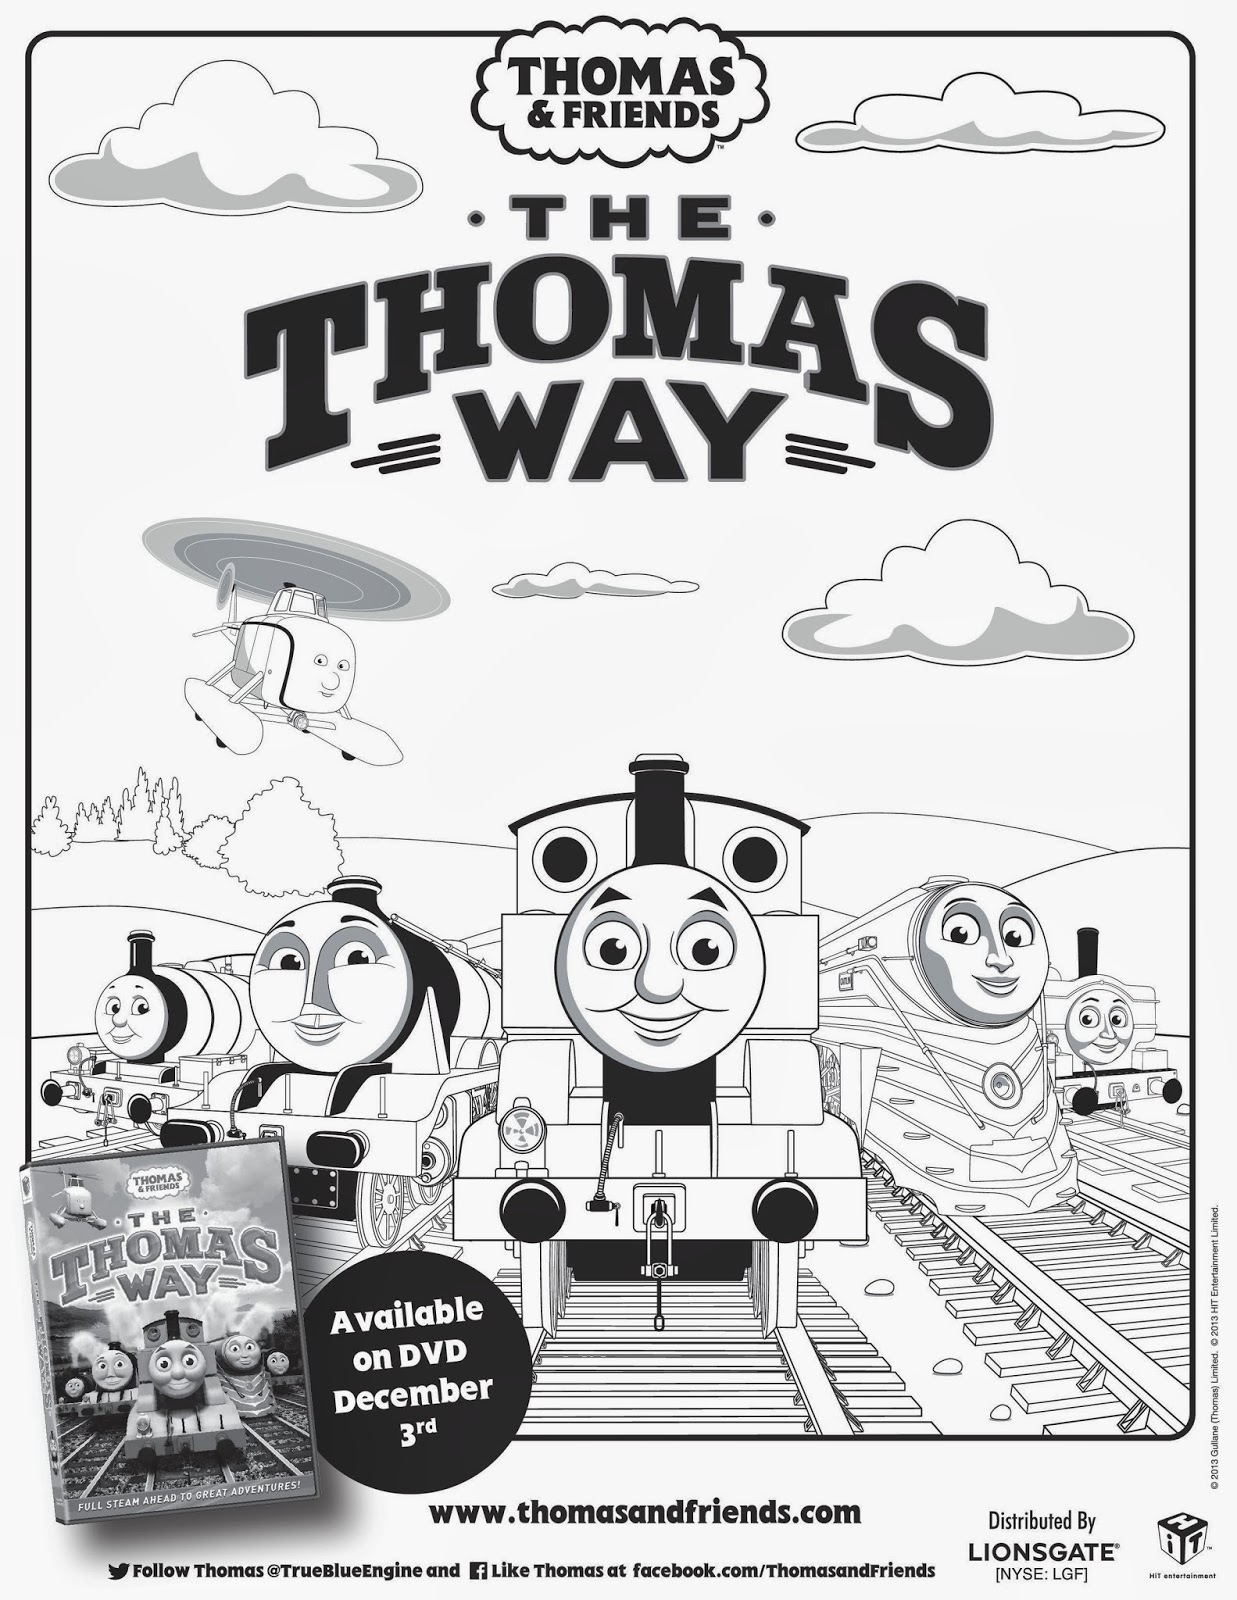 Java John Z s Thomas & Friends The Thomas Way Review & Giveaway